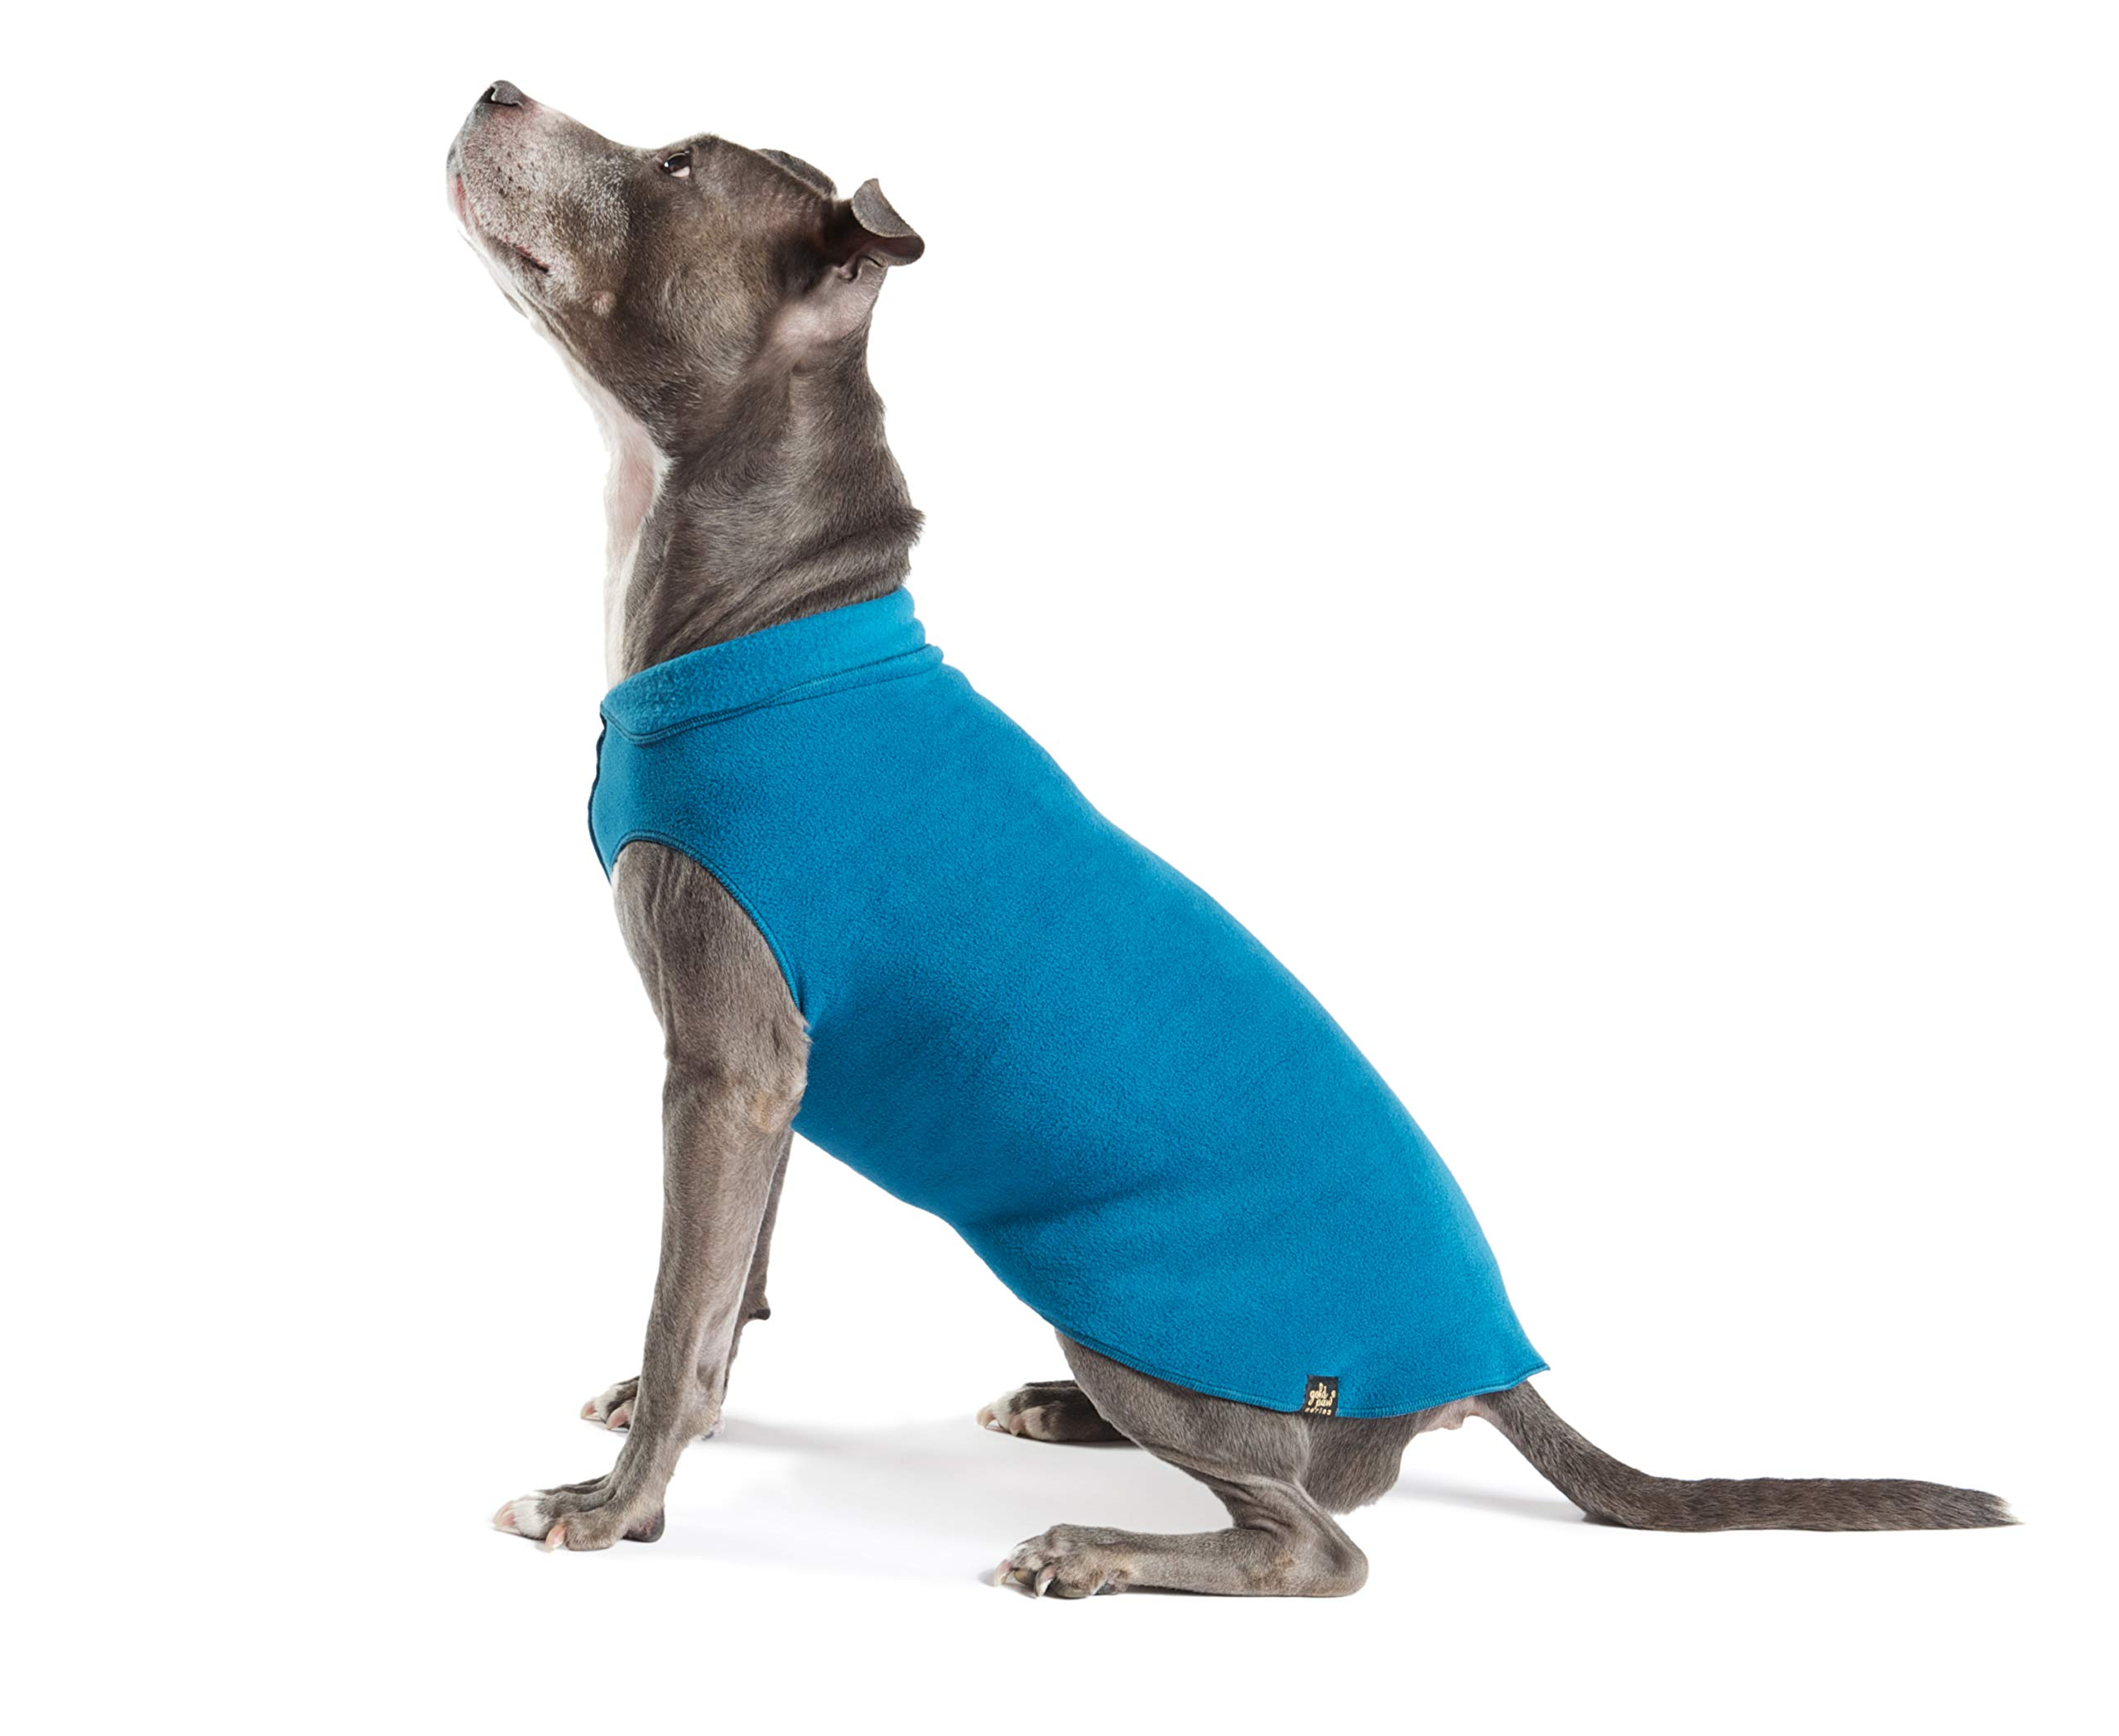 Gold Paw Stretch Fleece Dog Coat - Soft, Warm Dog Clothes, Stretchy Pet Sweater - Machine Washable, Eco Friendly - All Season - Sizes 2-33, Marine Blue, Size 14 by Gold Paw